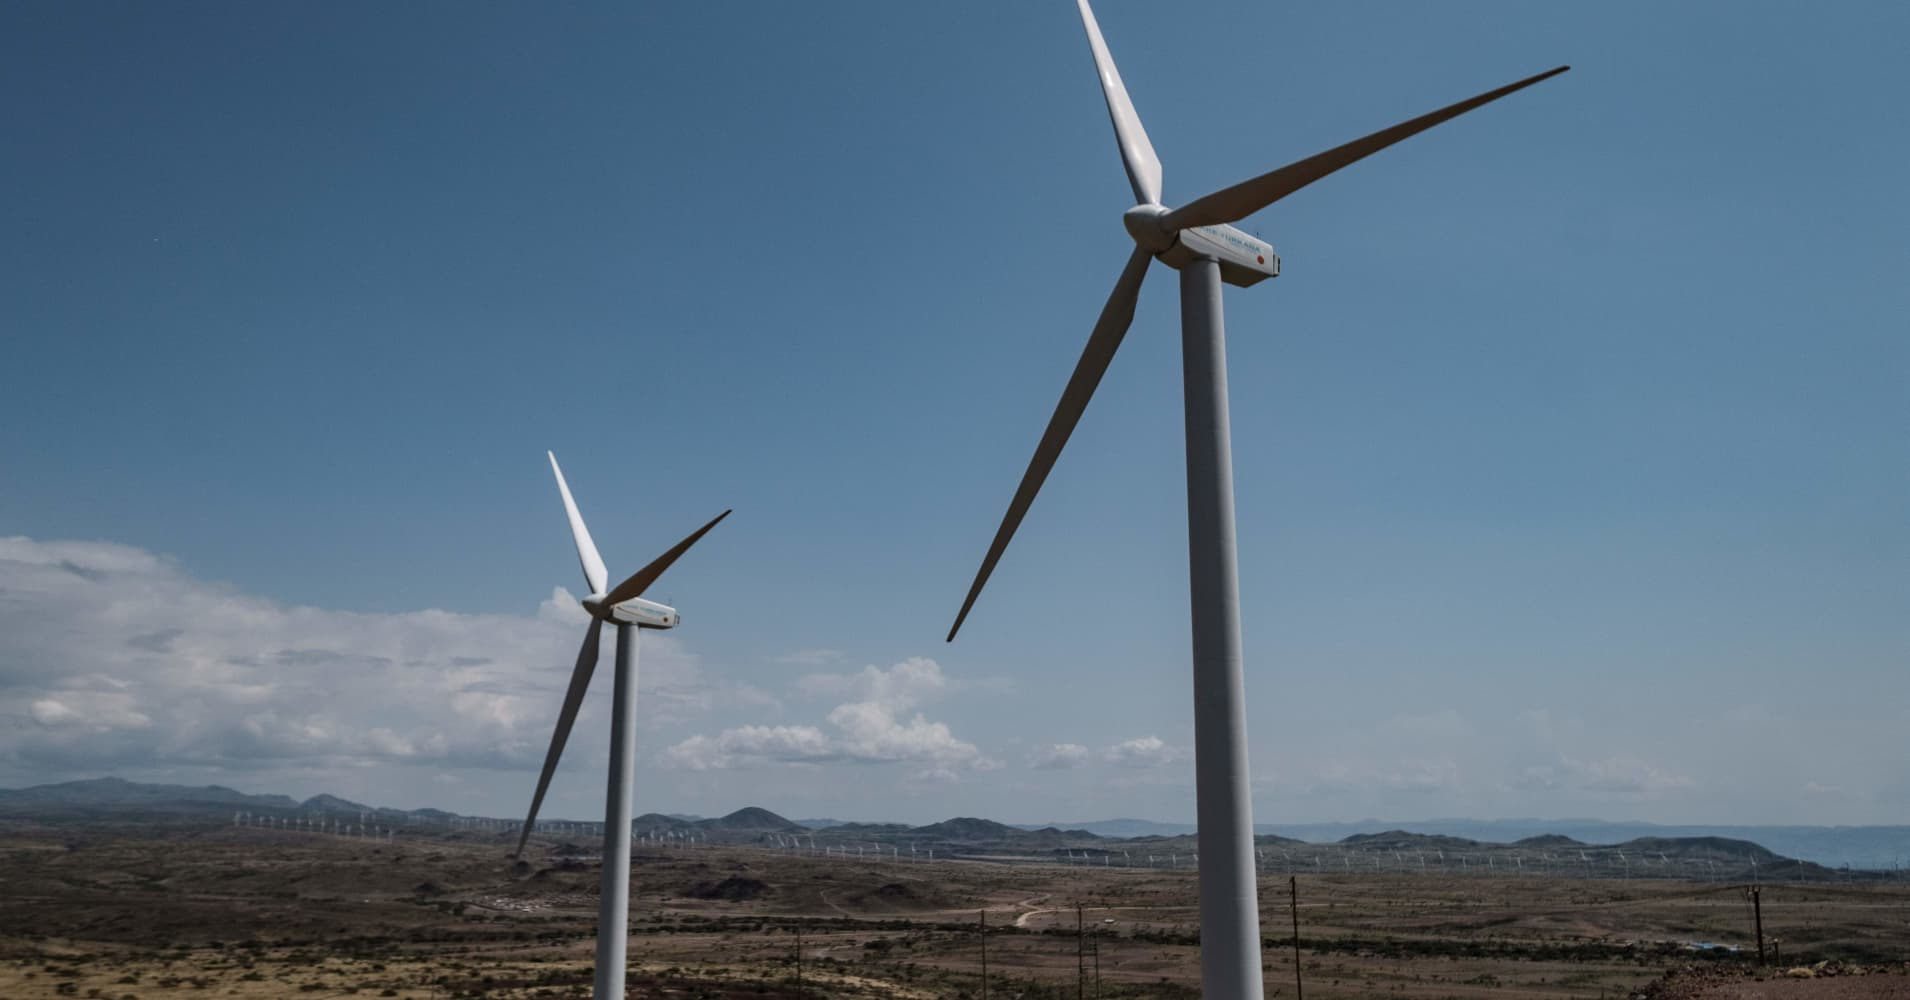 Construction underway on West Africa's 'first utility scale wind farm'